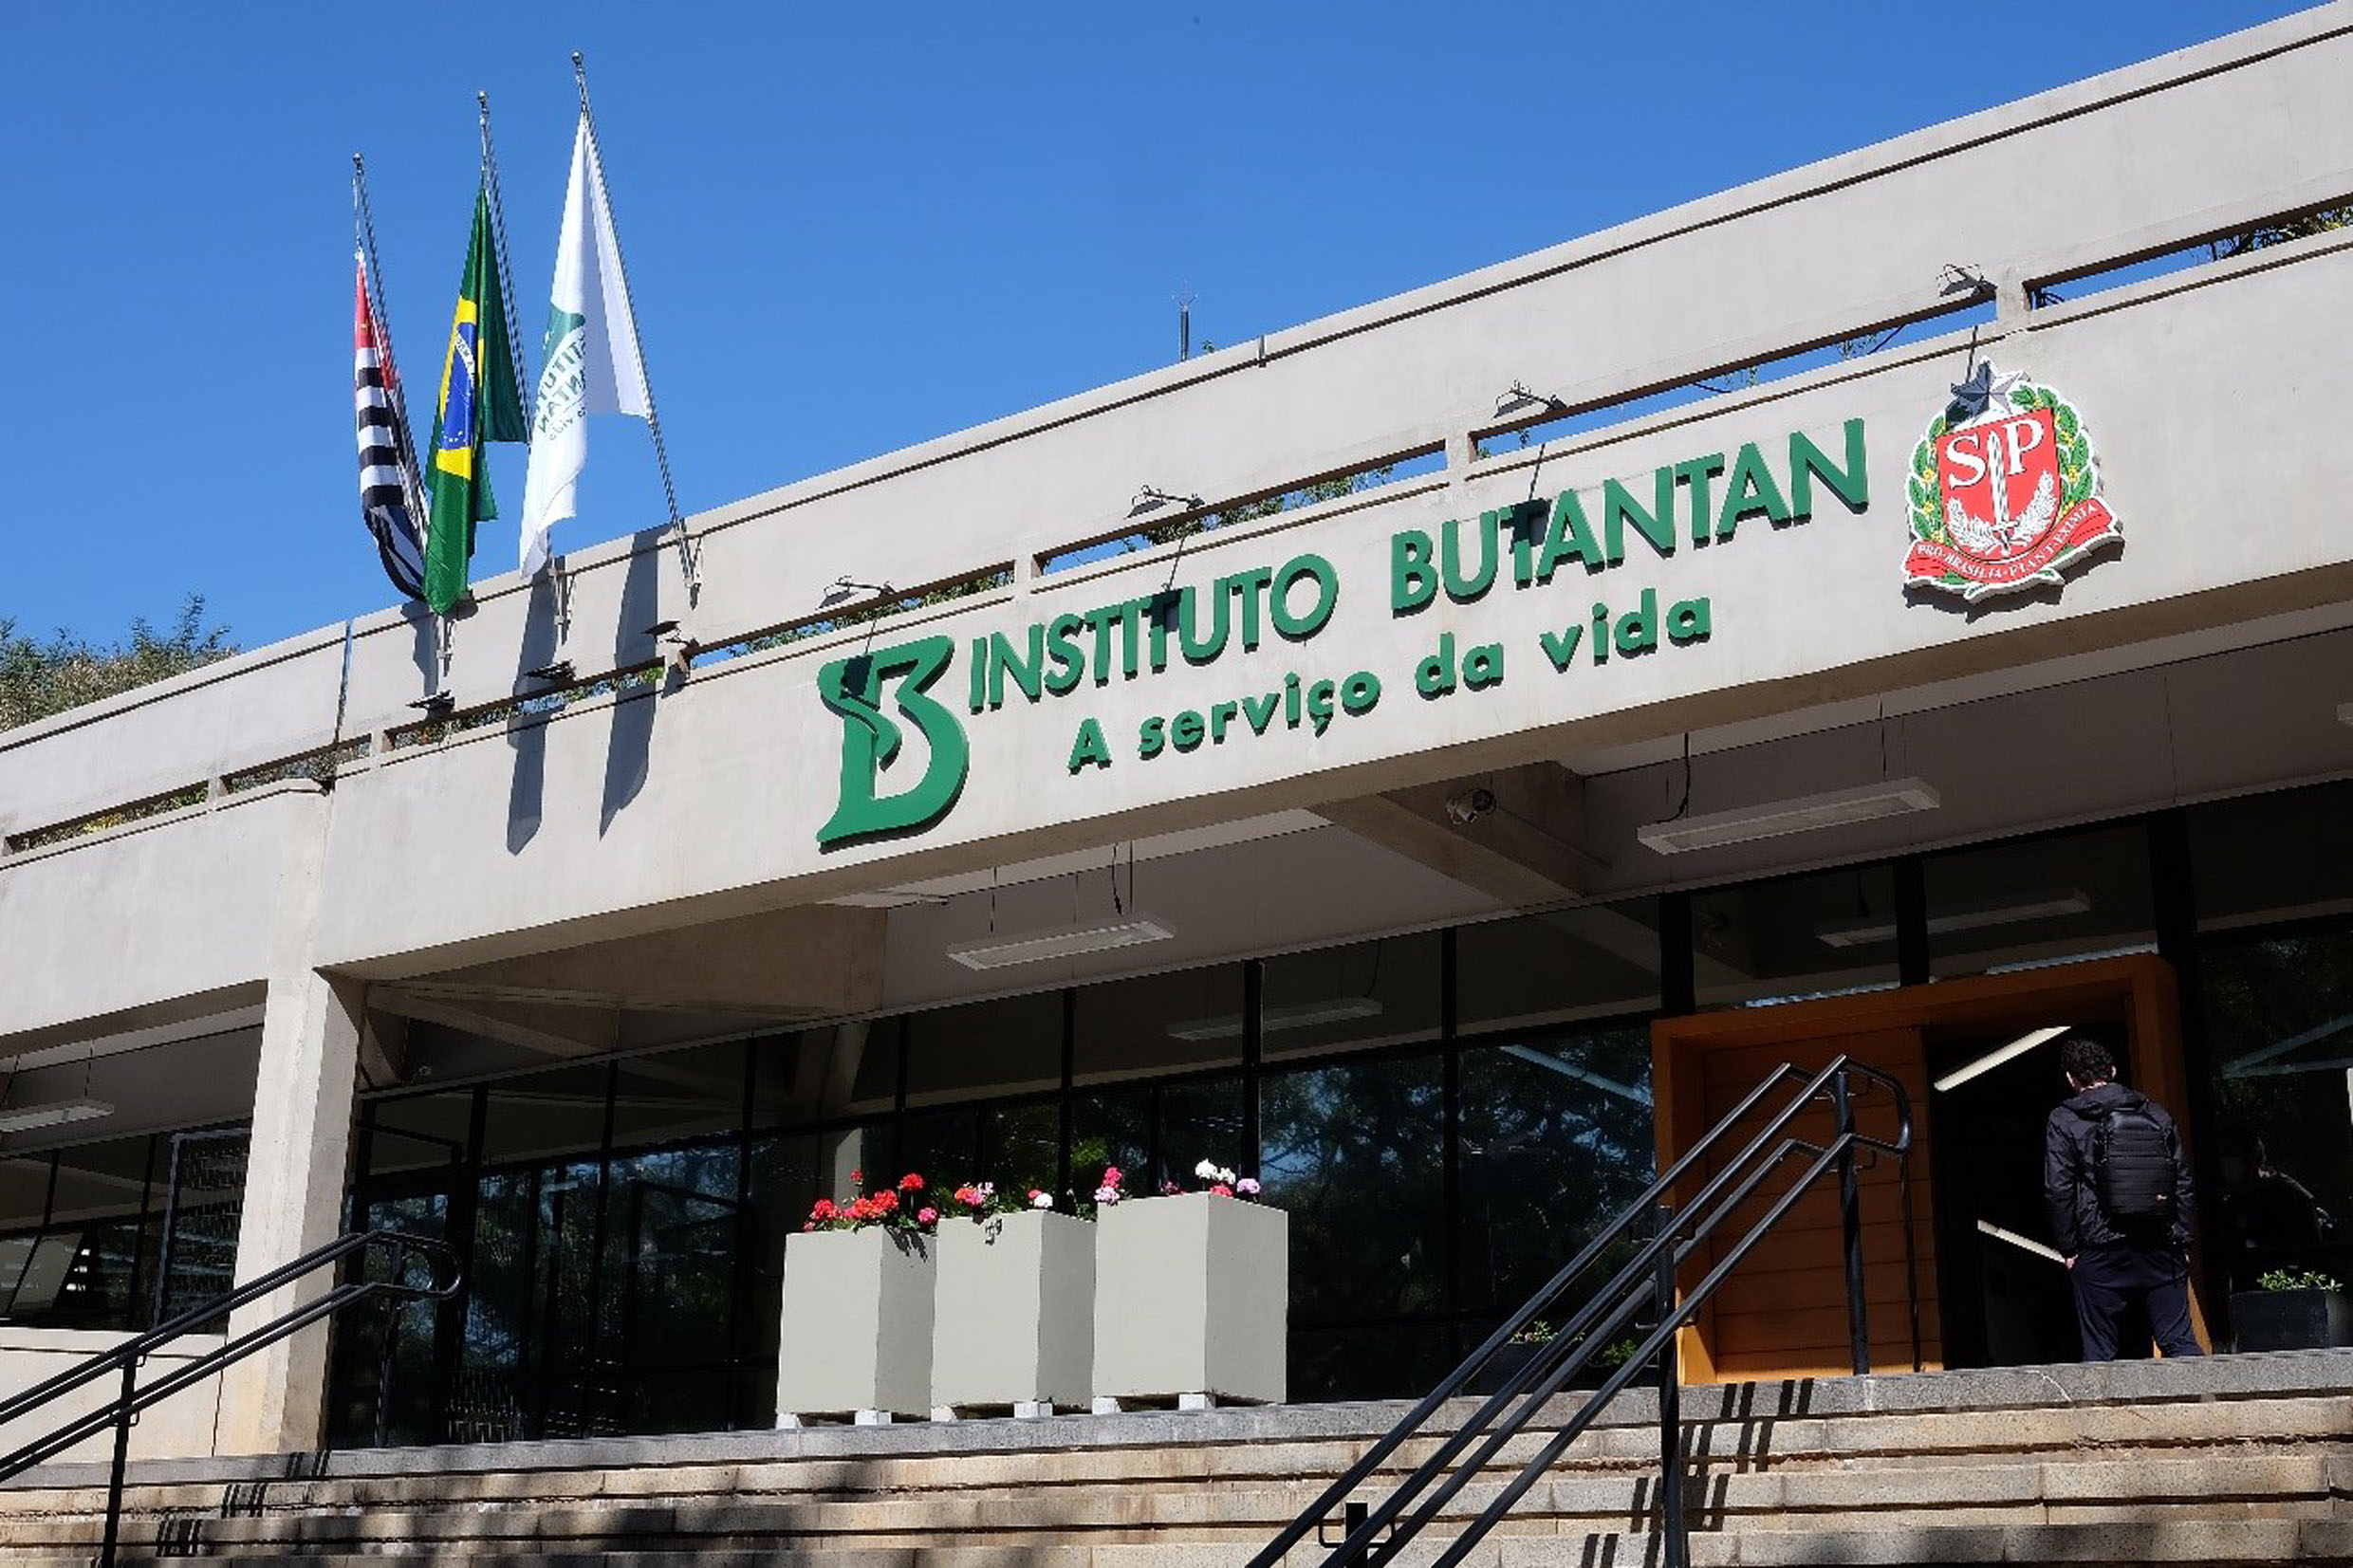 Soro anti-Covid do Instituto Butantan<a style='float:right' href='https://www3.al.sp.gov.br/repositorio/noticia/N-07-2021/fg270763.jpg' target=_blank><img src='/_img/material-file-download-white.png' width='14px' alt='Clique para baixar a imagem'></a>